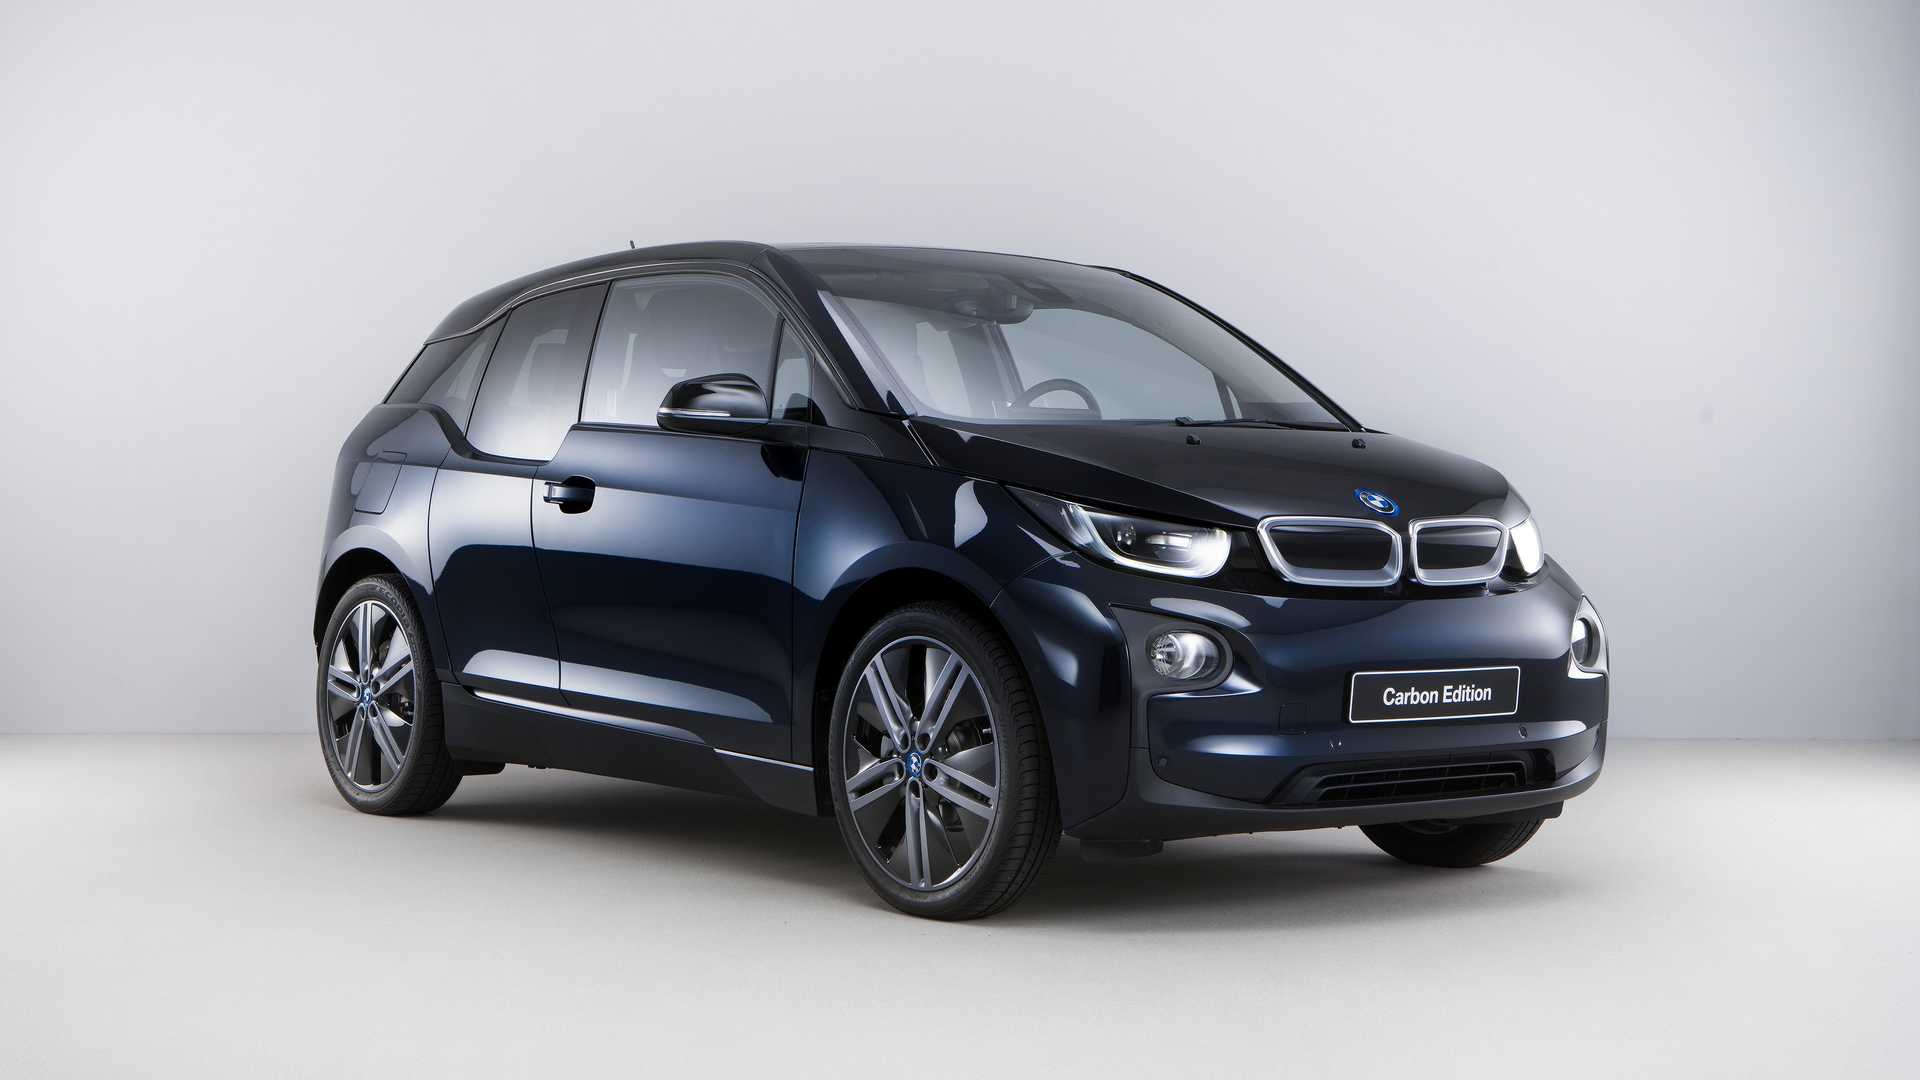 bmw i3 carbon edition rides silently on 20 inch wheels. Black Bedroom Furniture Sets. Home Design Ideas